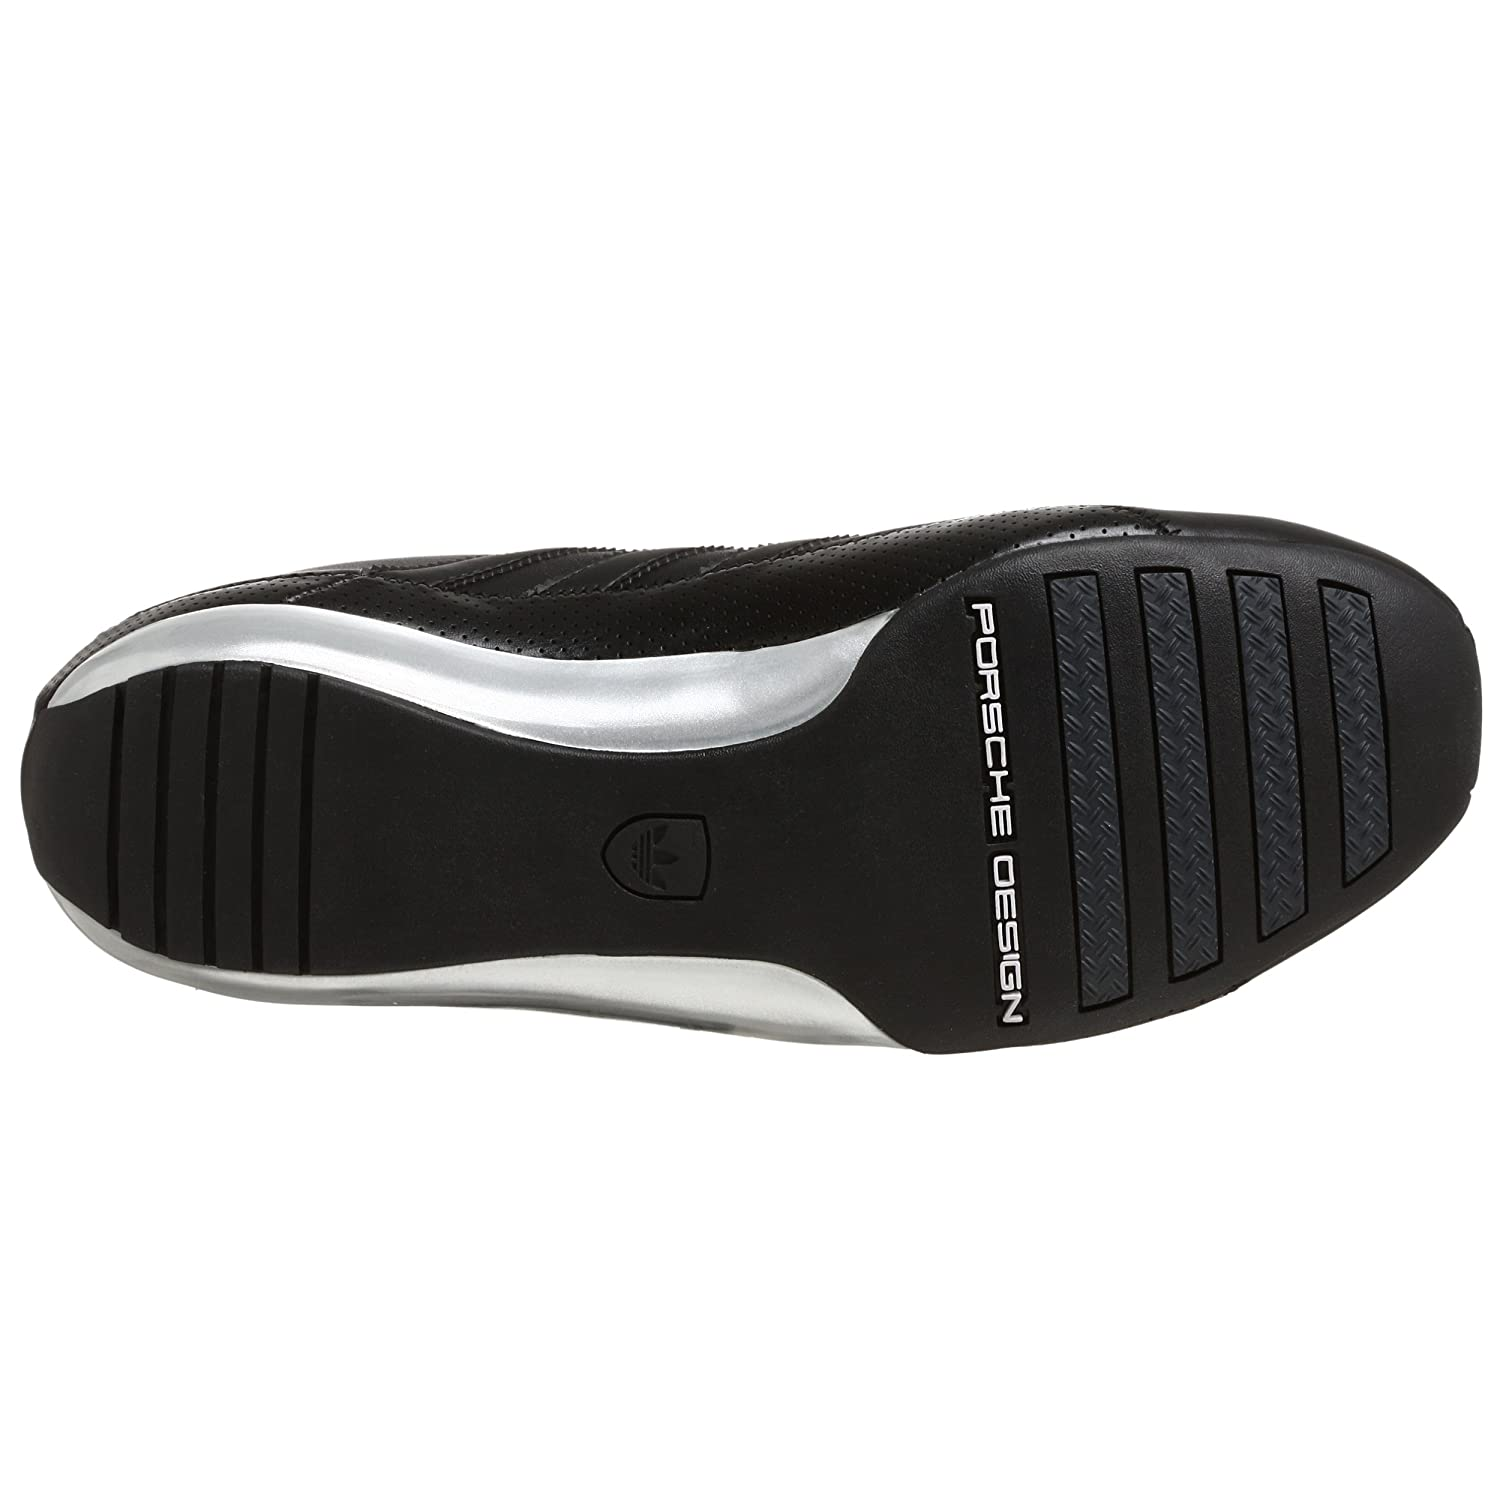 dc1782050f9b8 Adidas Originals Men s Porsche Design S2 Driving Shoe